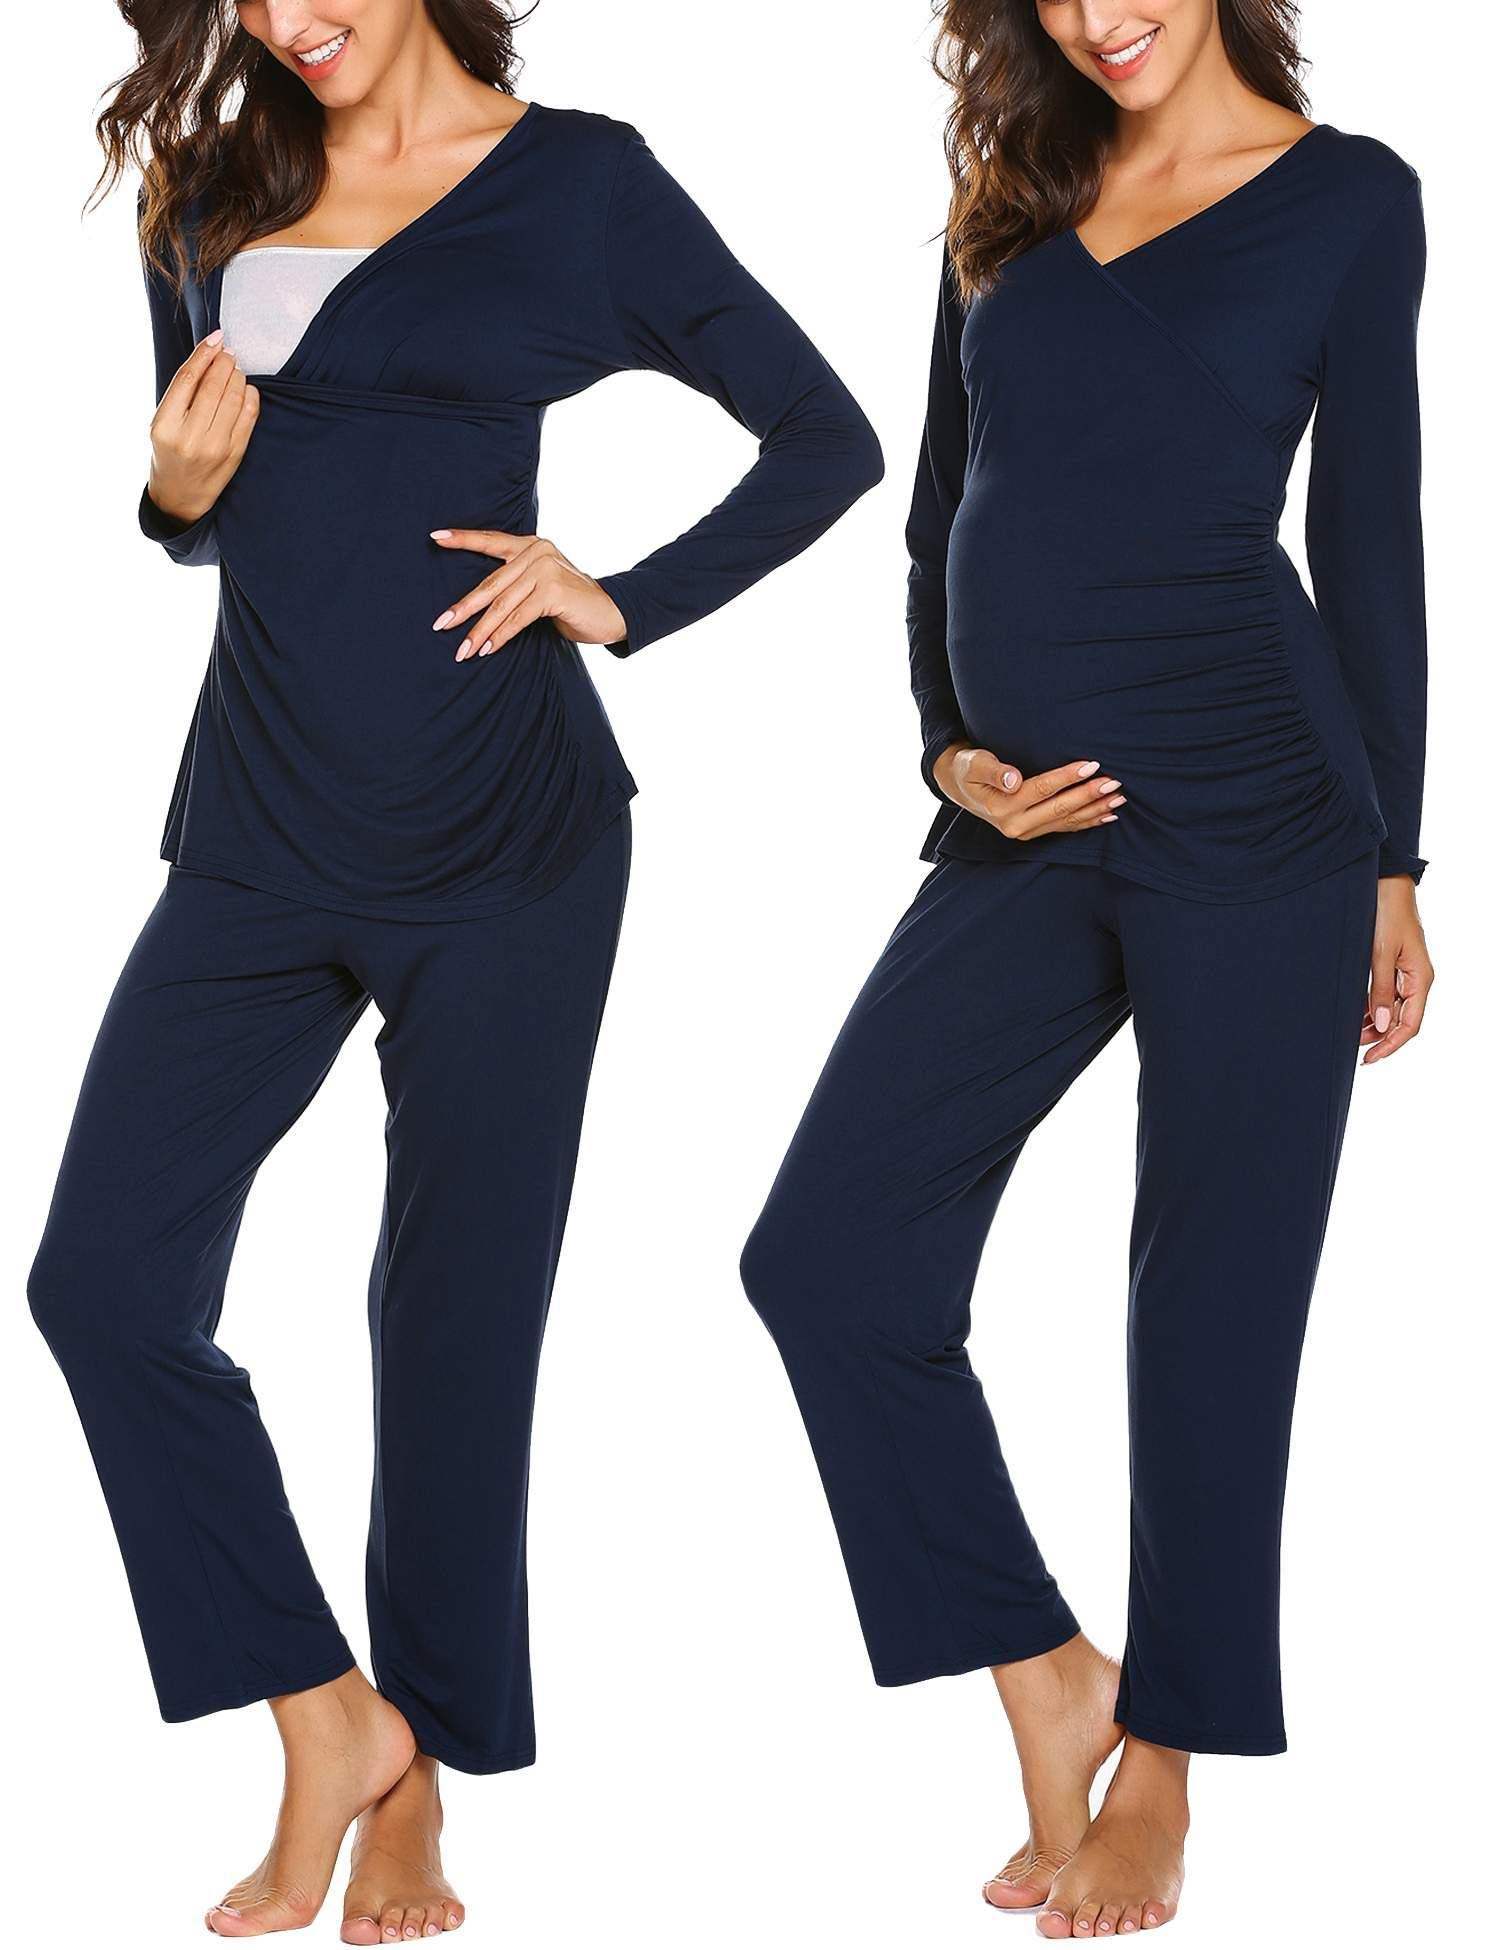 Ekouaer Women's Maternity & Nursing Pajamas Sleepwear Set Soft Pregnancy Breastfeeding Pj Set(S-XXL)